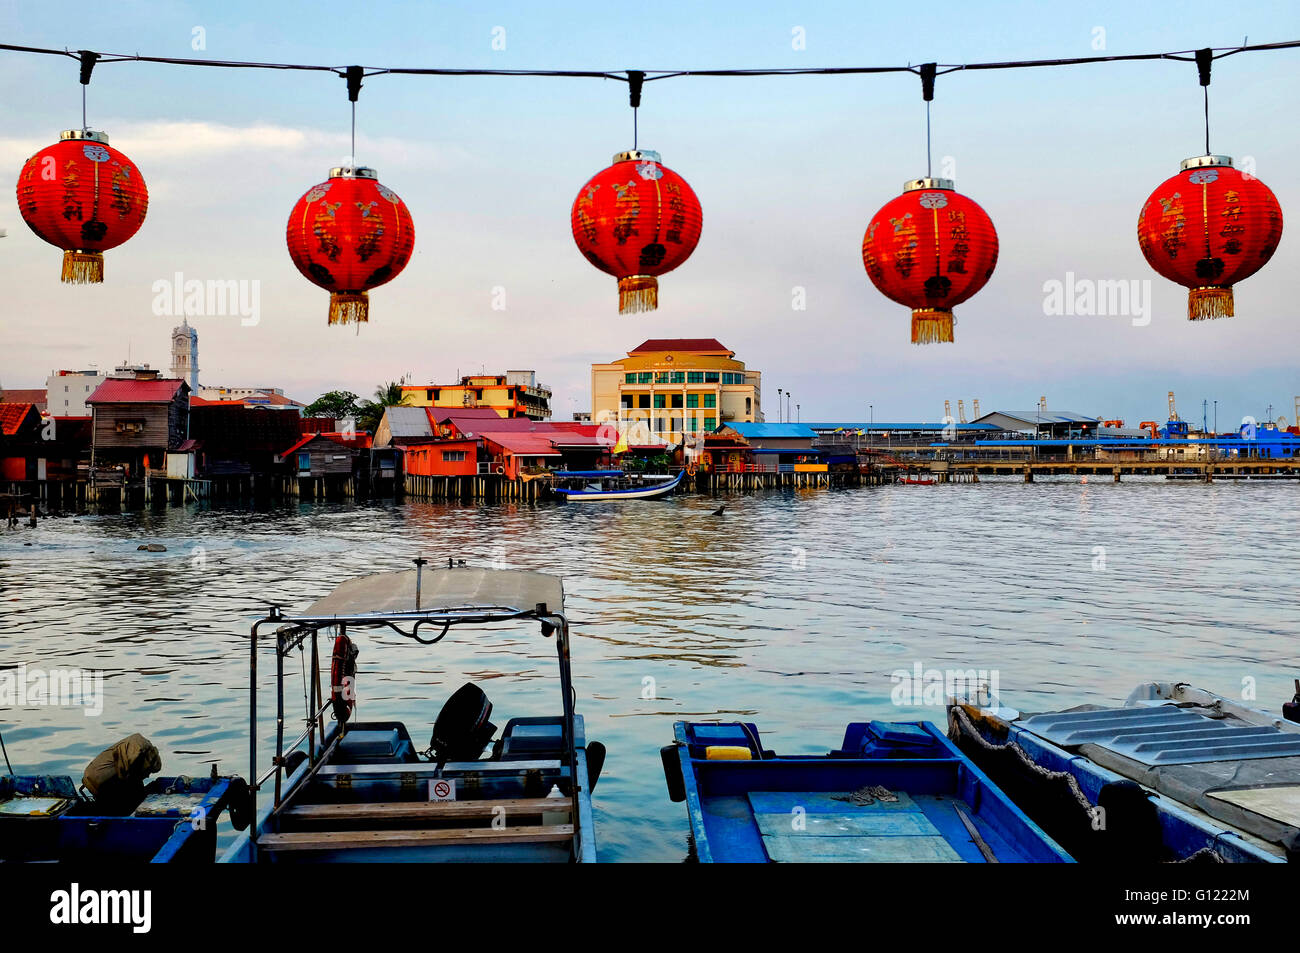 Chew Jetty, George Town, Penang, Malaysia - Stock Image